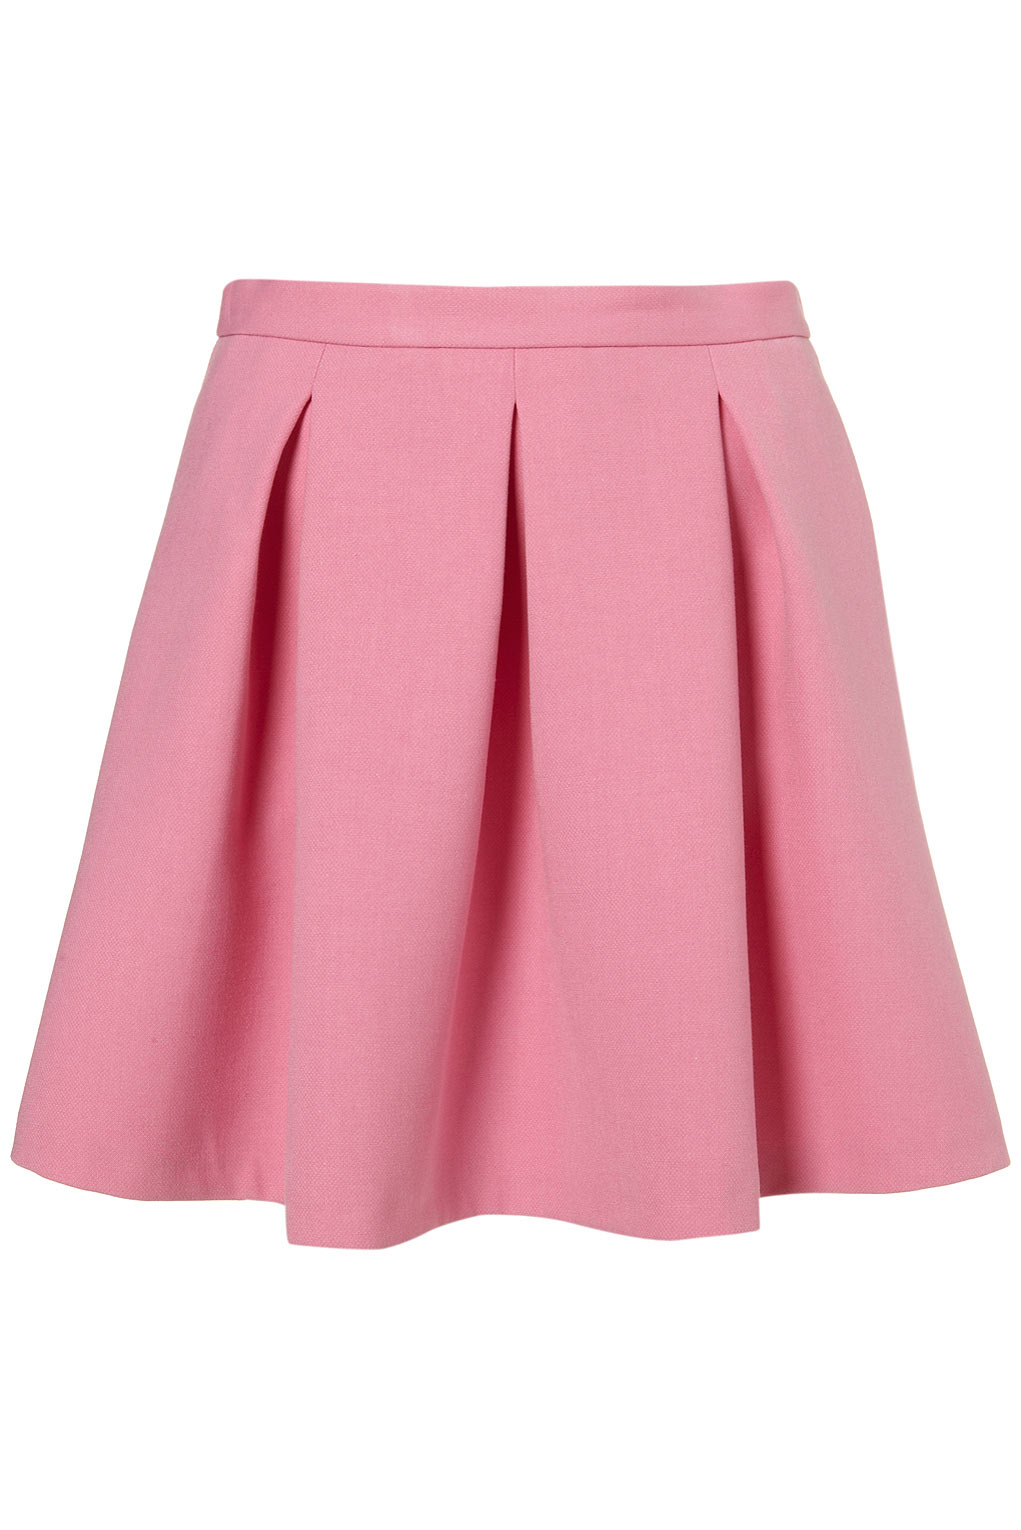 Lyst - TOPSHOP Invert Pleat Flippy Skirt in Pink